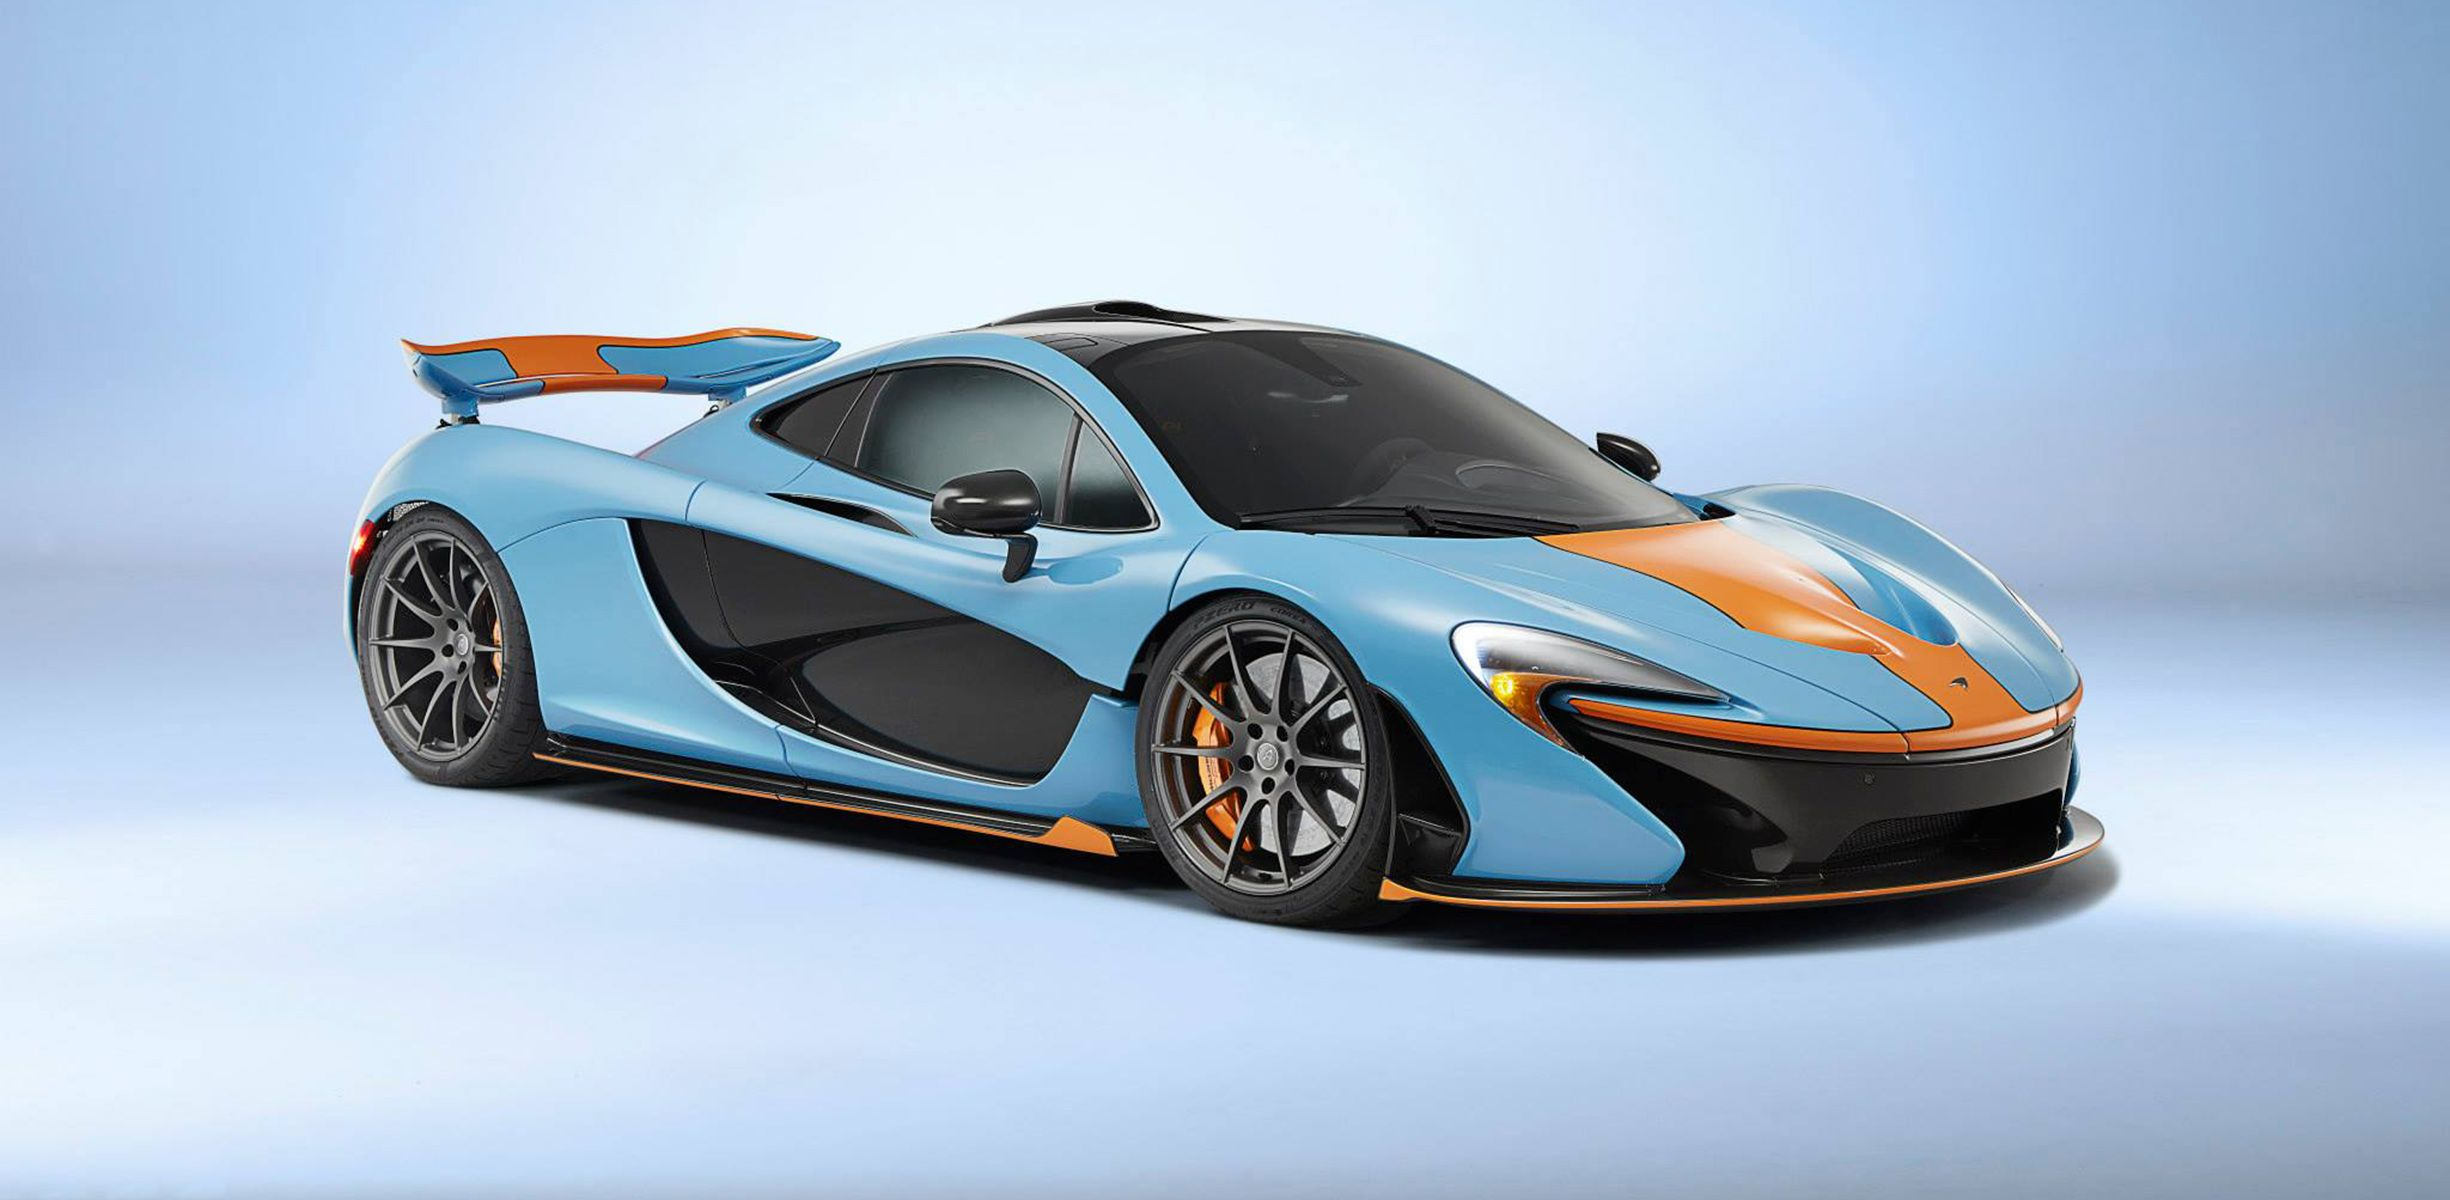 McLaren P1 s dressed up in Gulf colours s 1 of 3